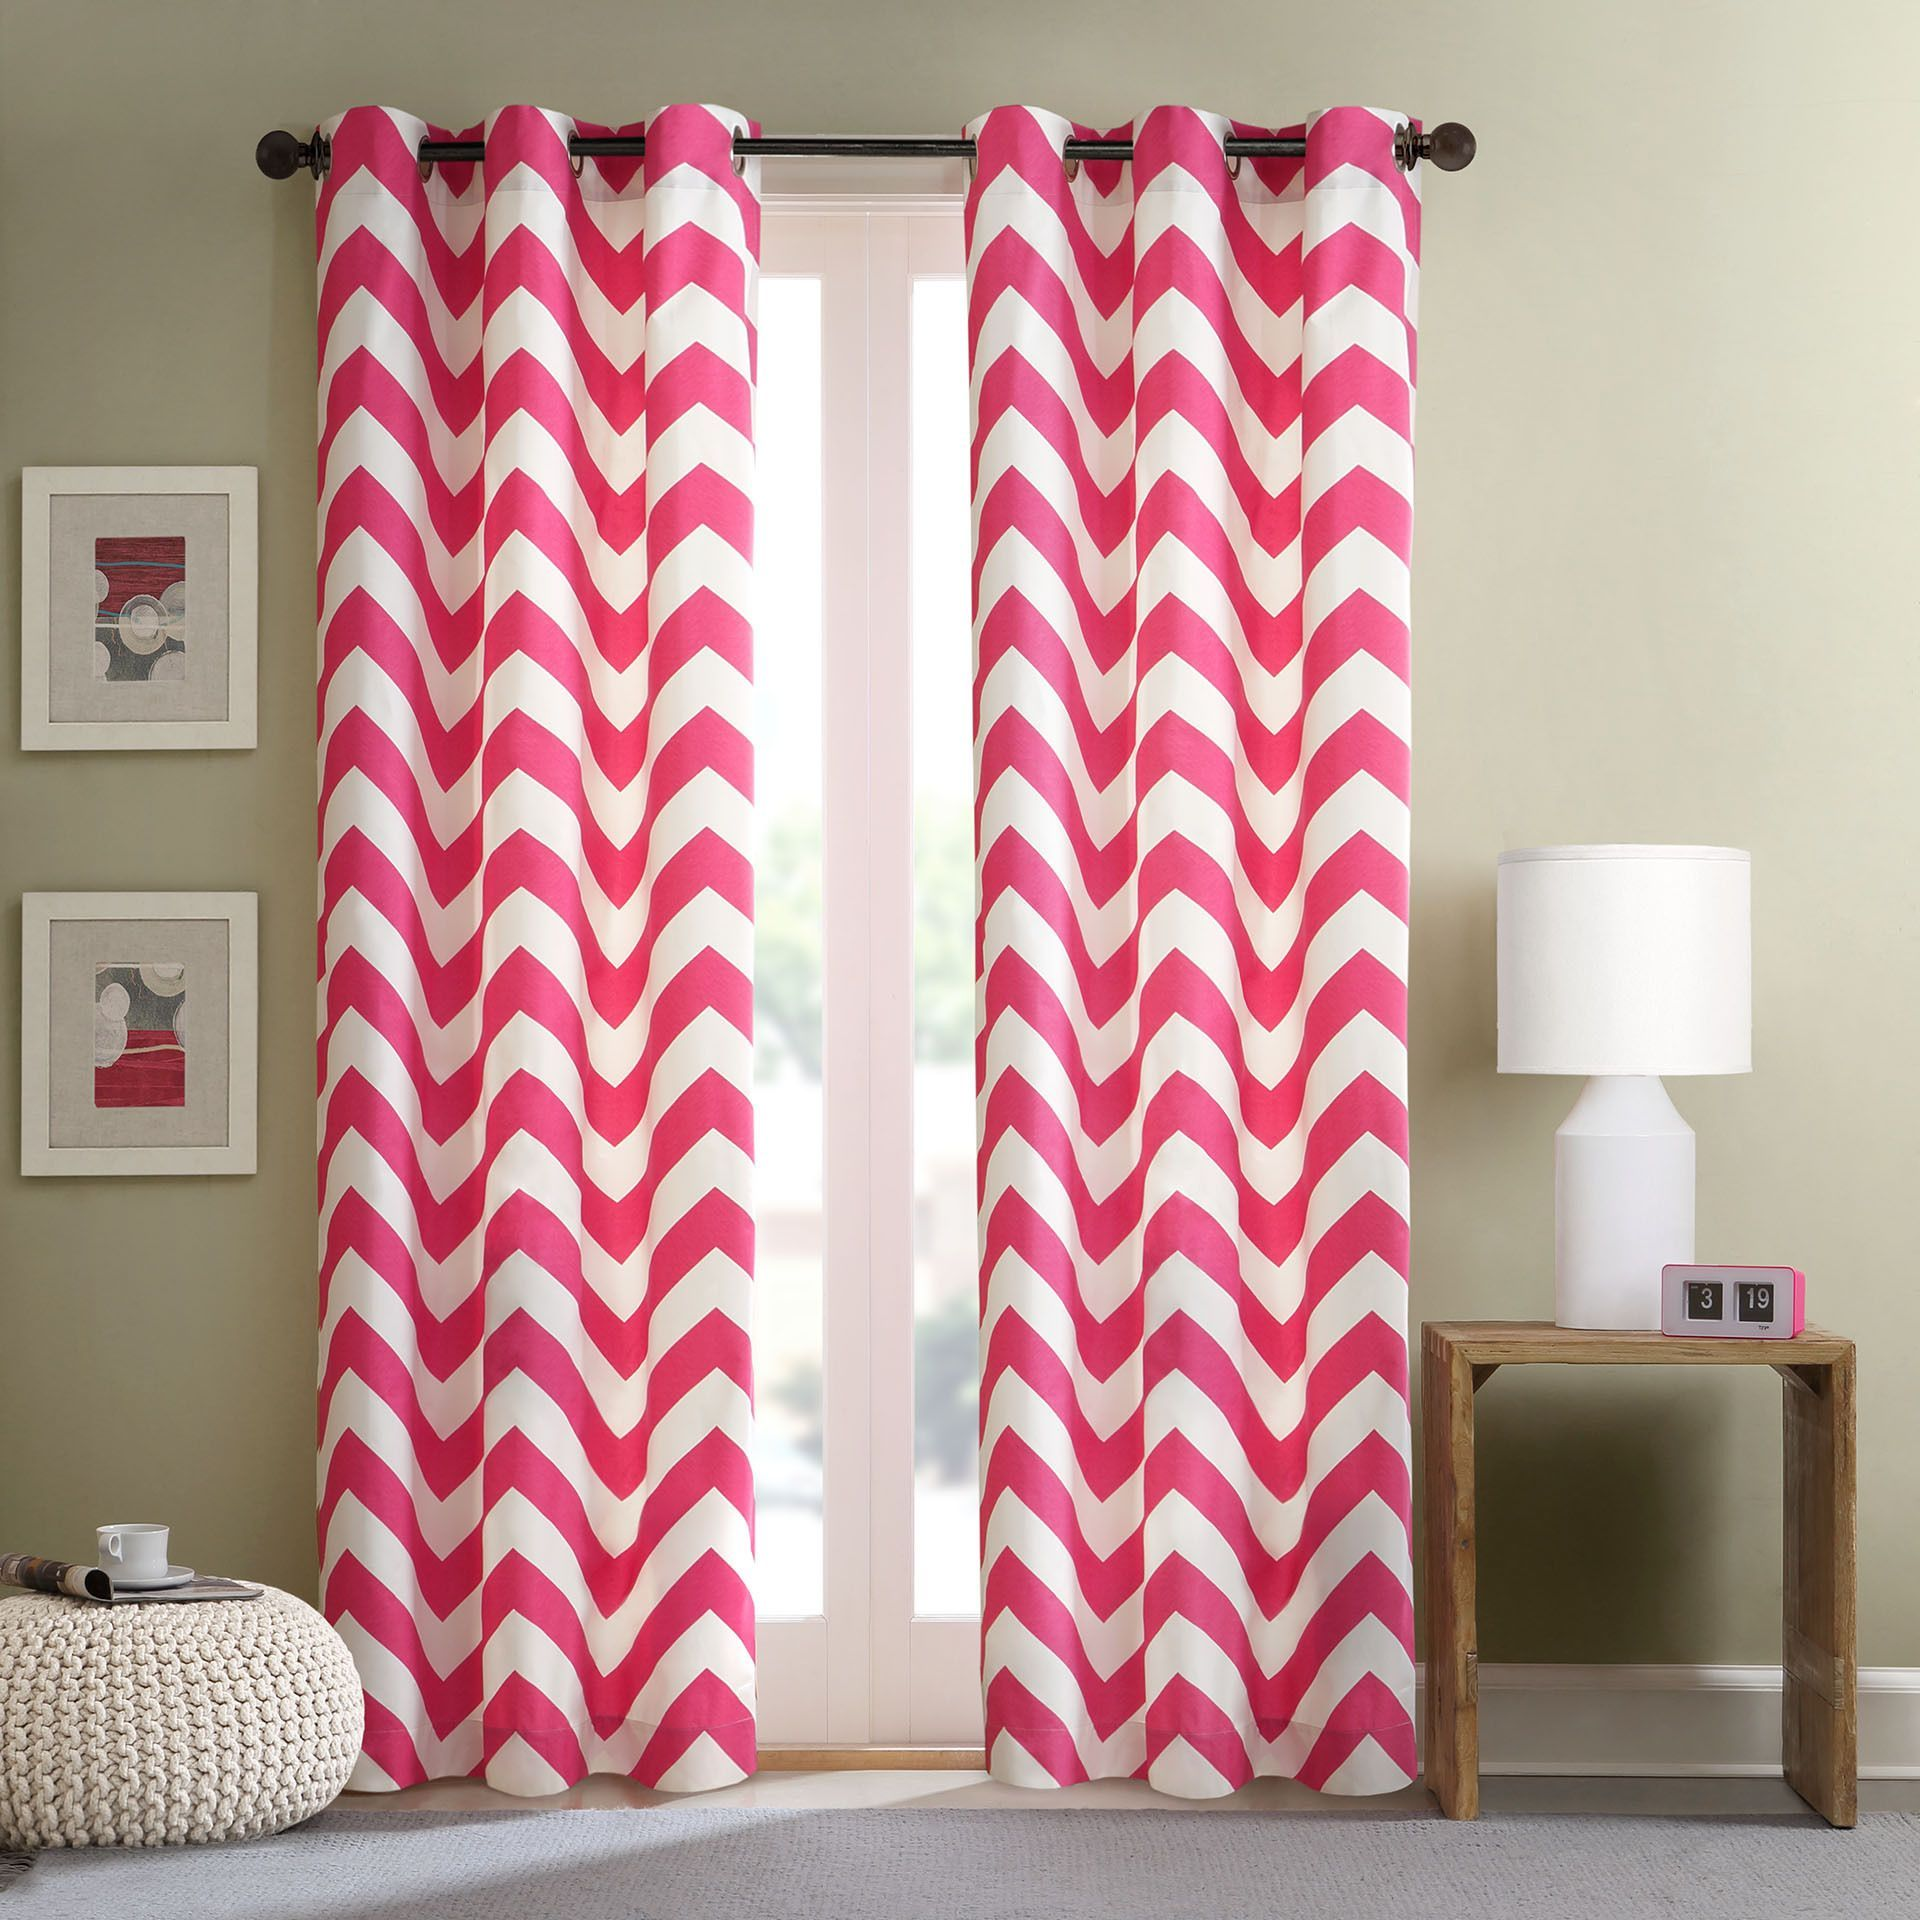 Intelligent Design Virgo Pink Chevron Window Curtain Panel Set Of 2 42 Inches X 63 Inches Pink Size 42 X 63 I Love Pink Pinterest Cortinas And Cool